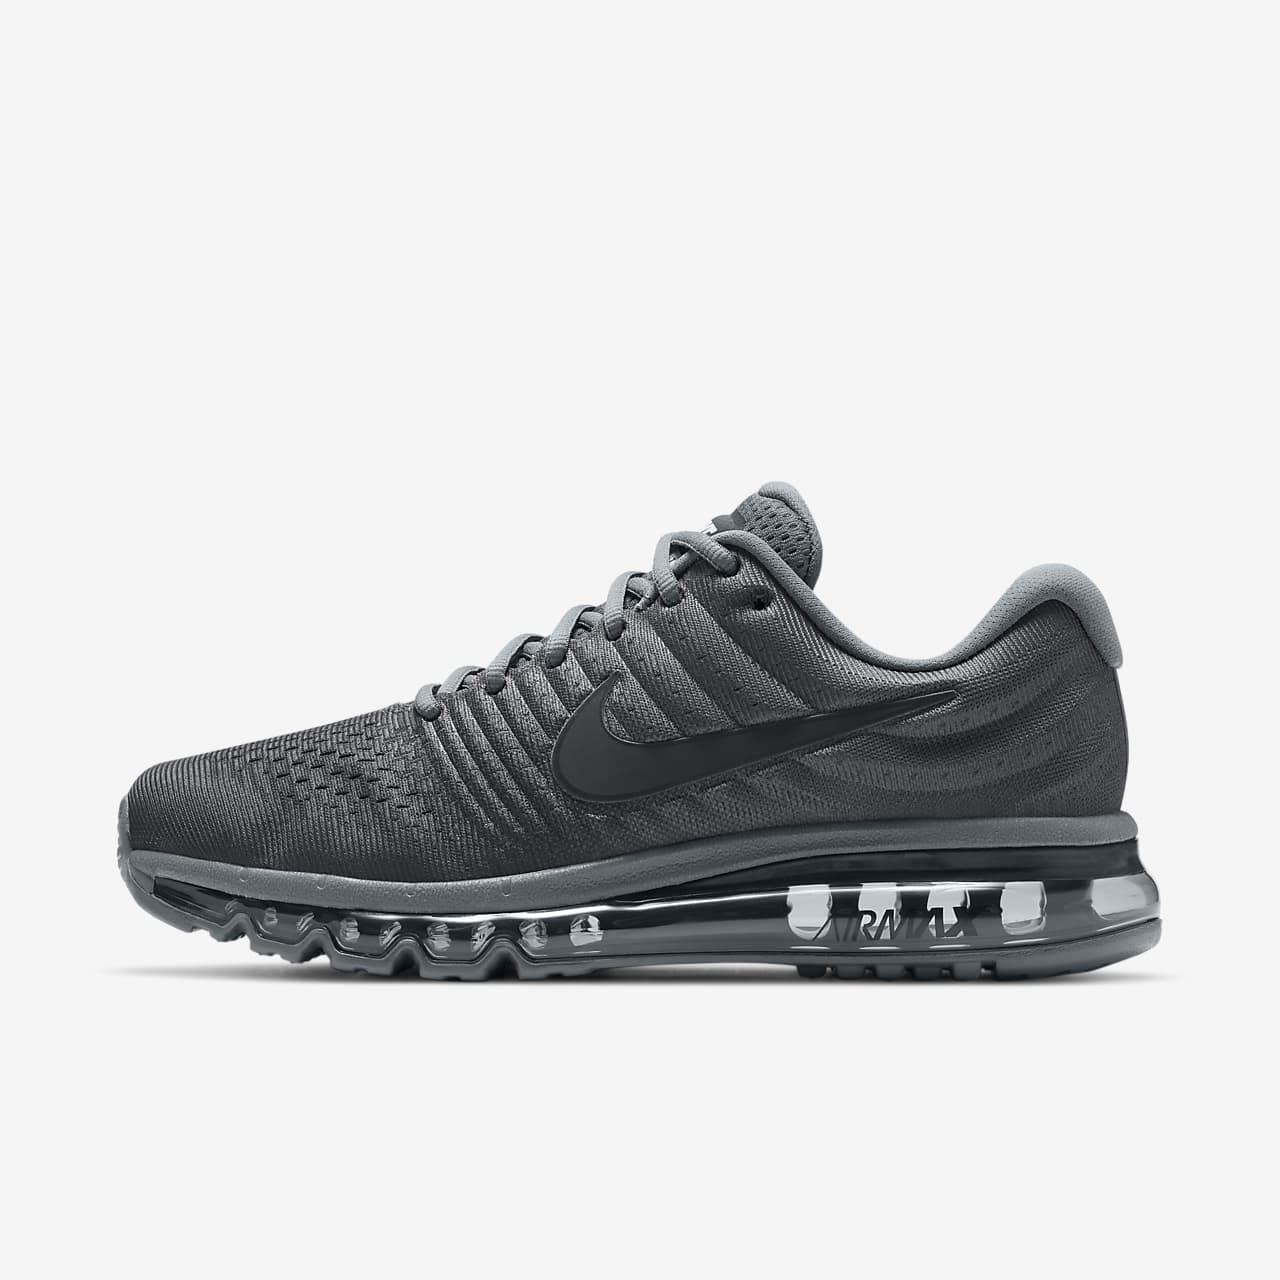 Low Resolution Nike Air Max 2017 Men s Shoe Nike Air Max 2017 Men s Shoe c2291cf03